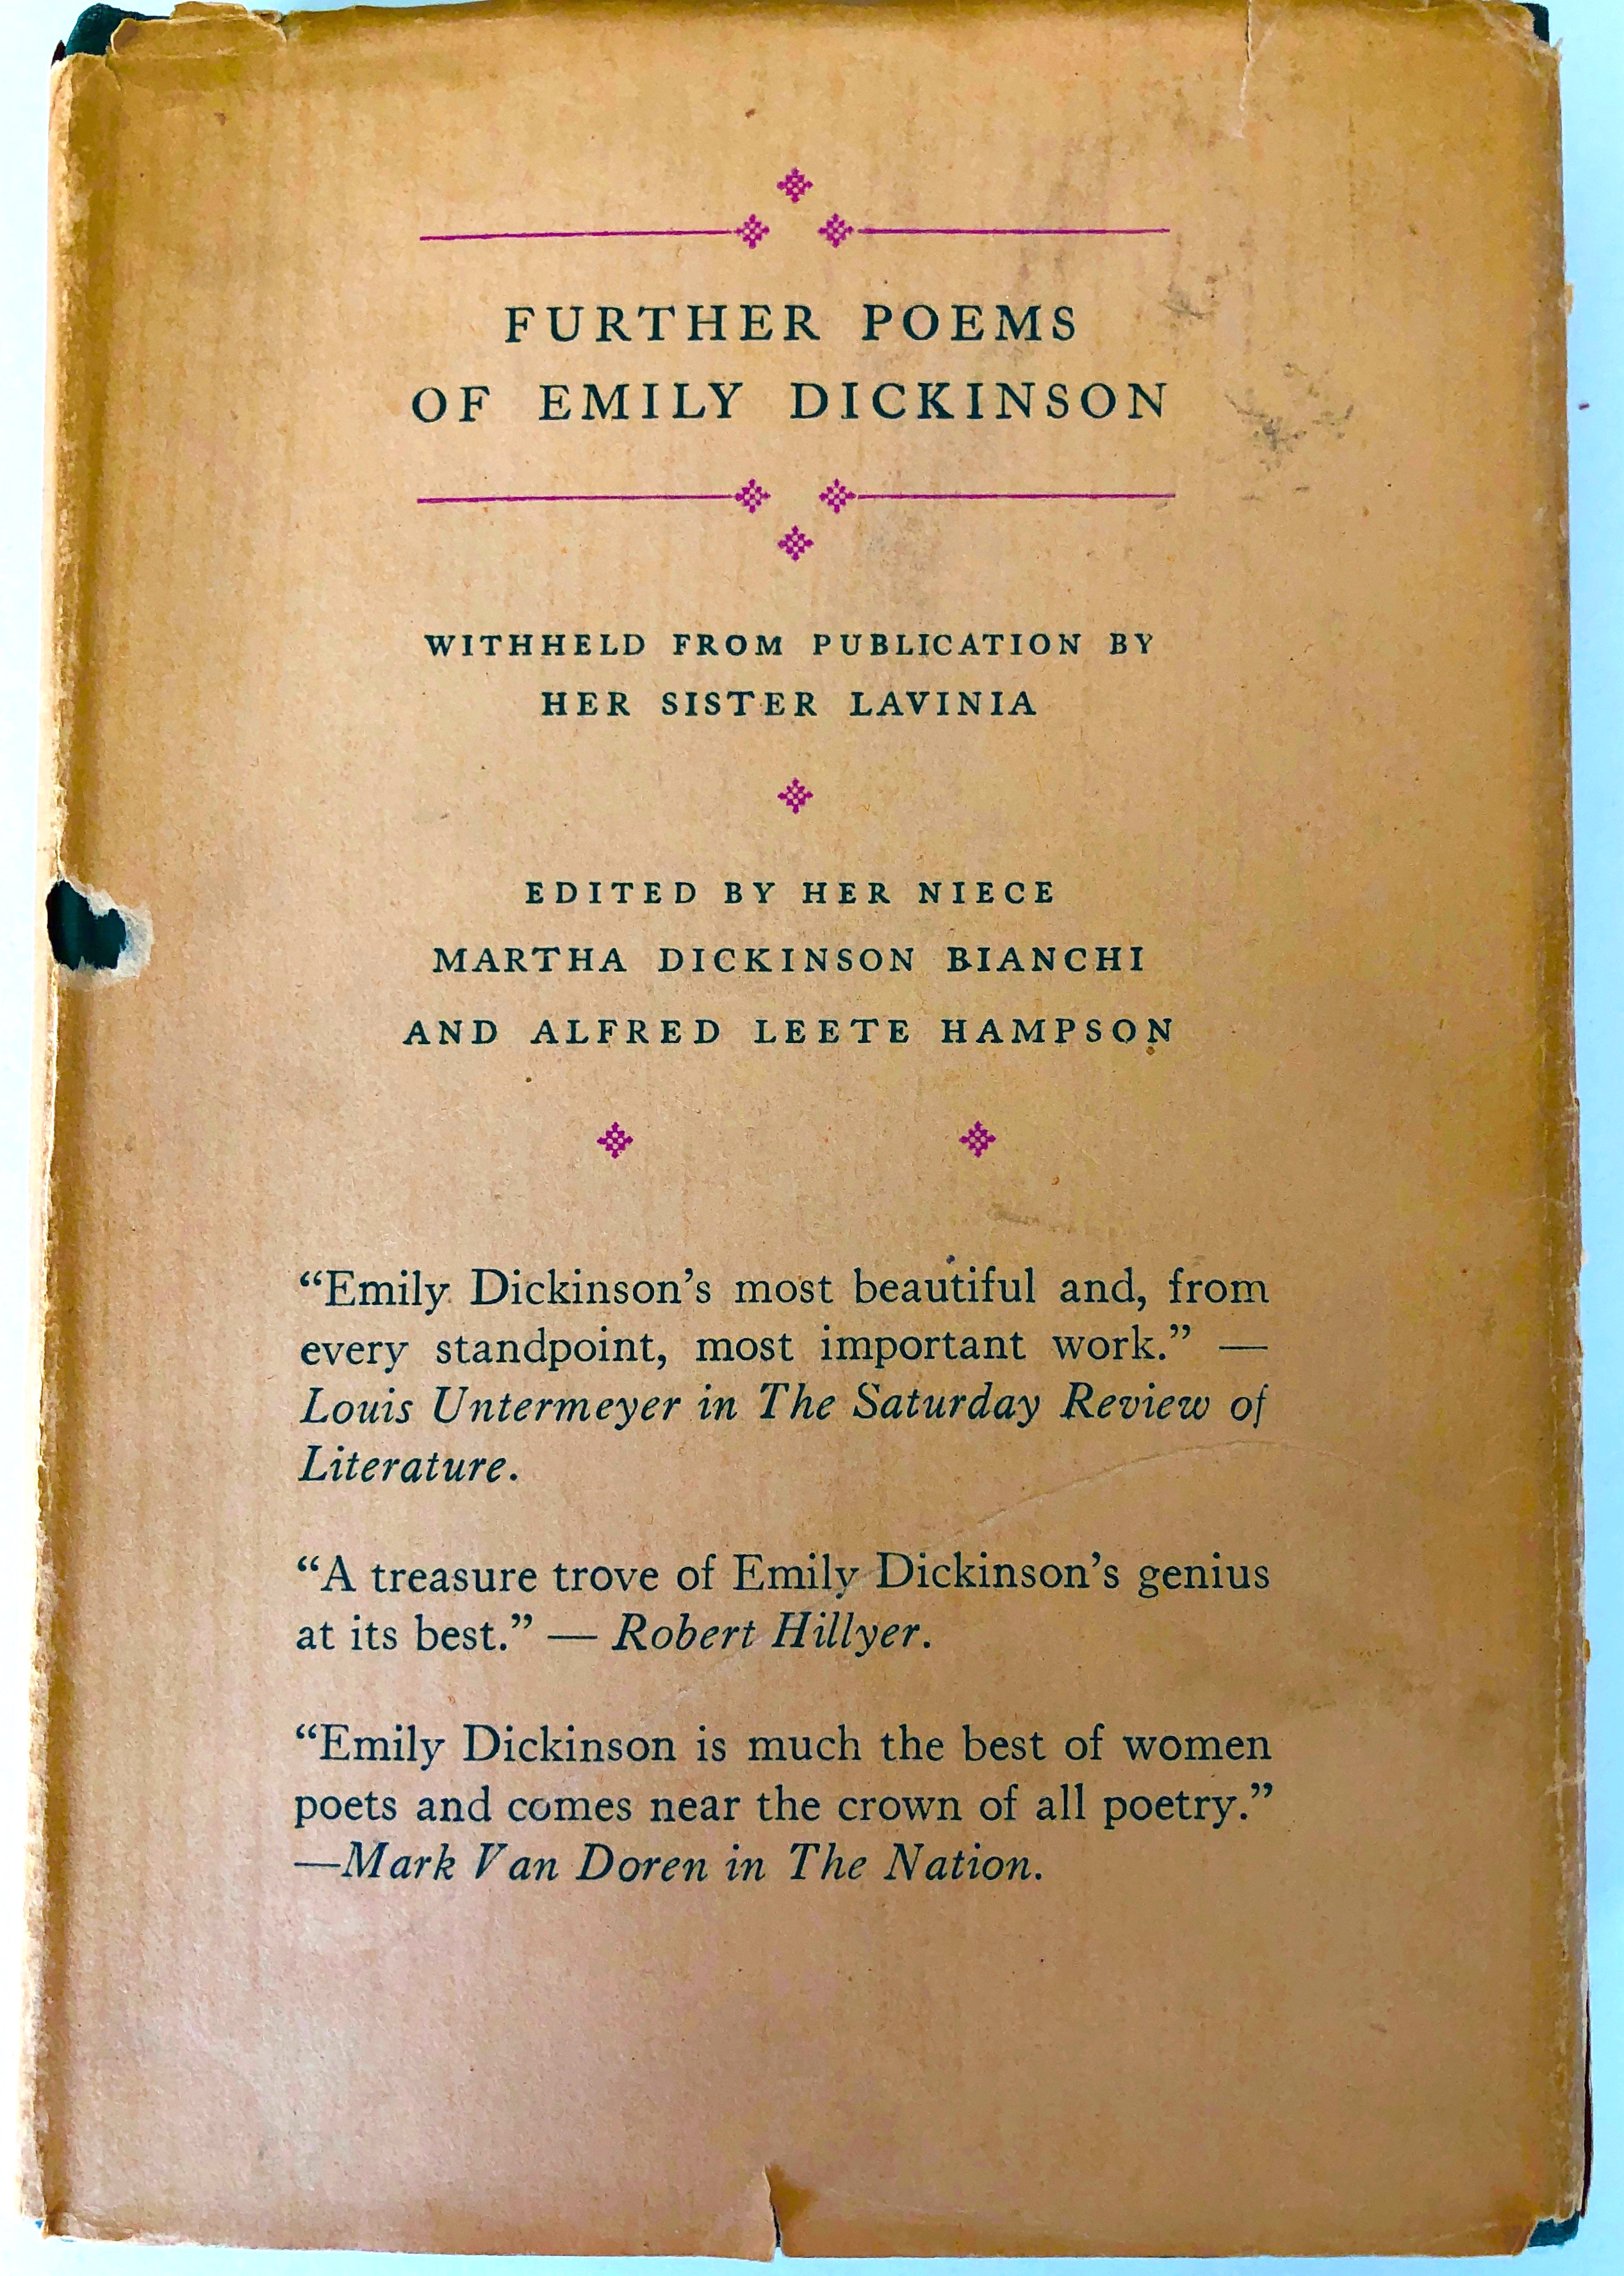 Further Poems of Emily Dickinson. Withheld from publication by her sister Lavinia. Edited by her niece Martha Dickinson Bianchi and Alfred Leete Hampson.